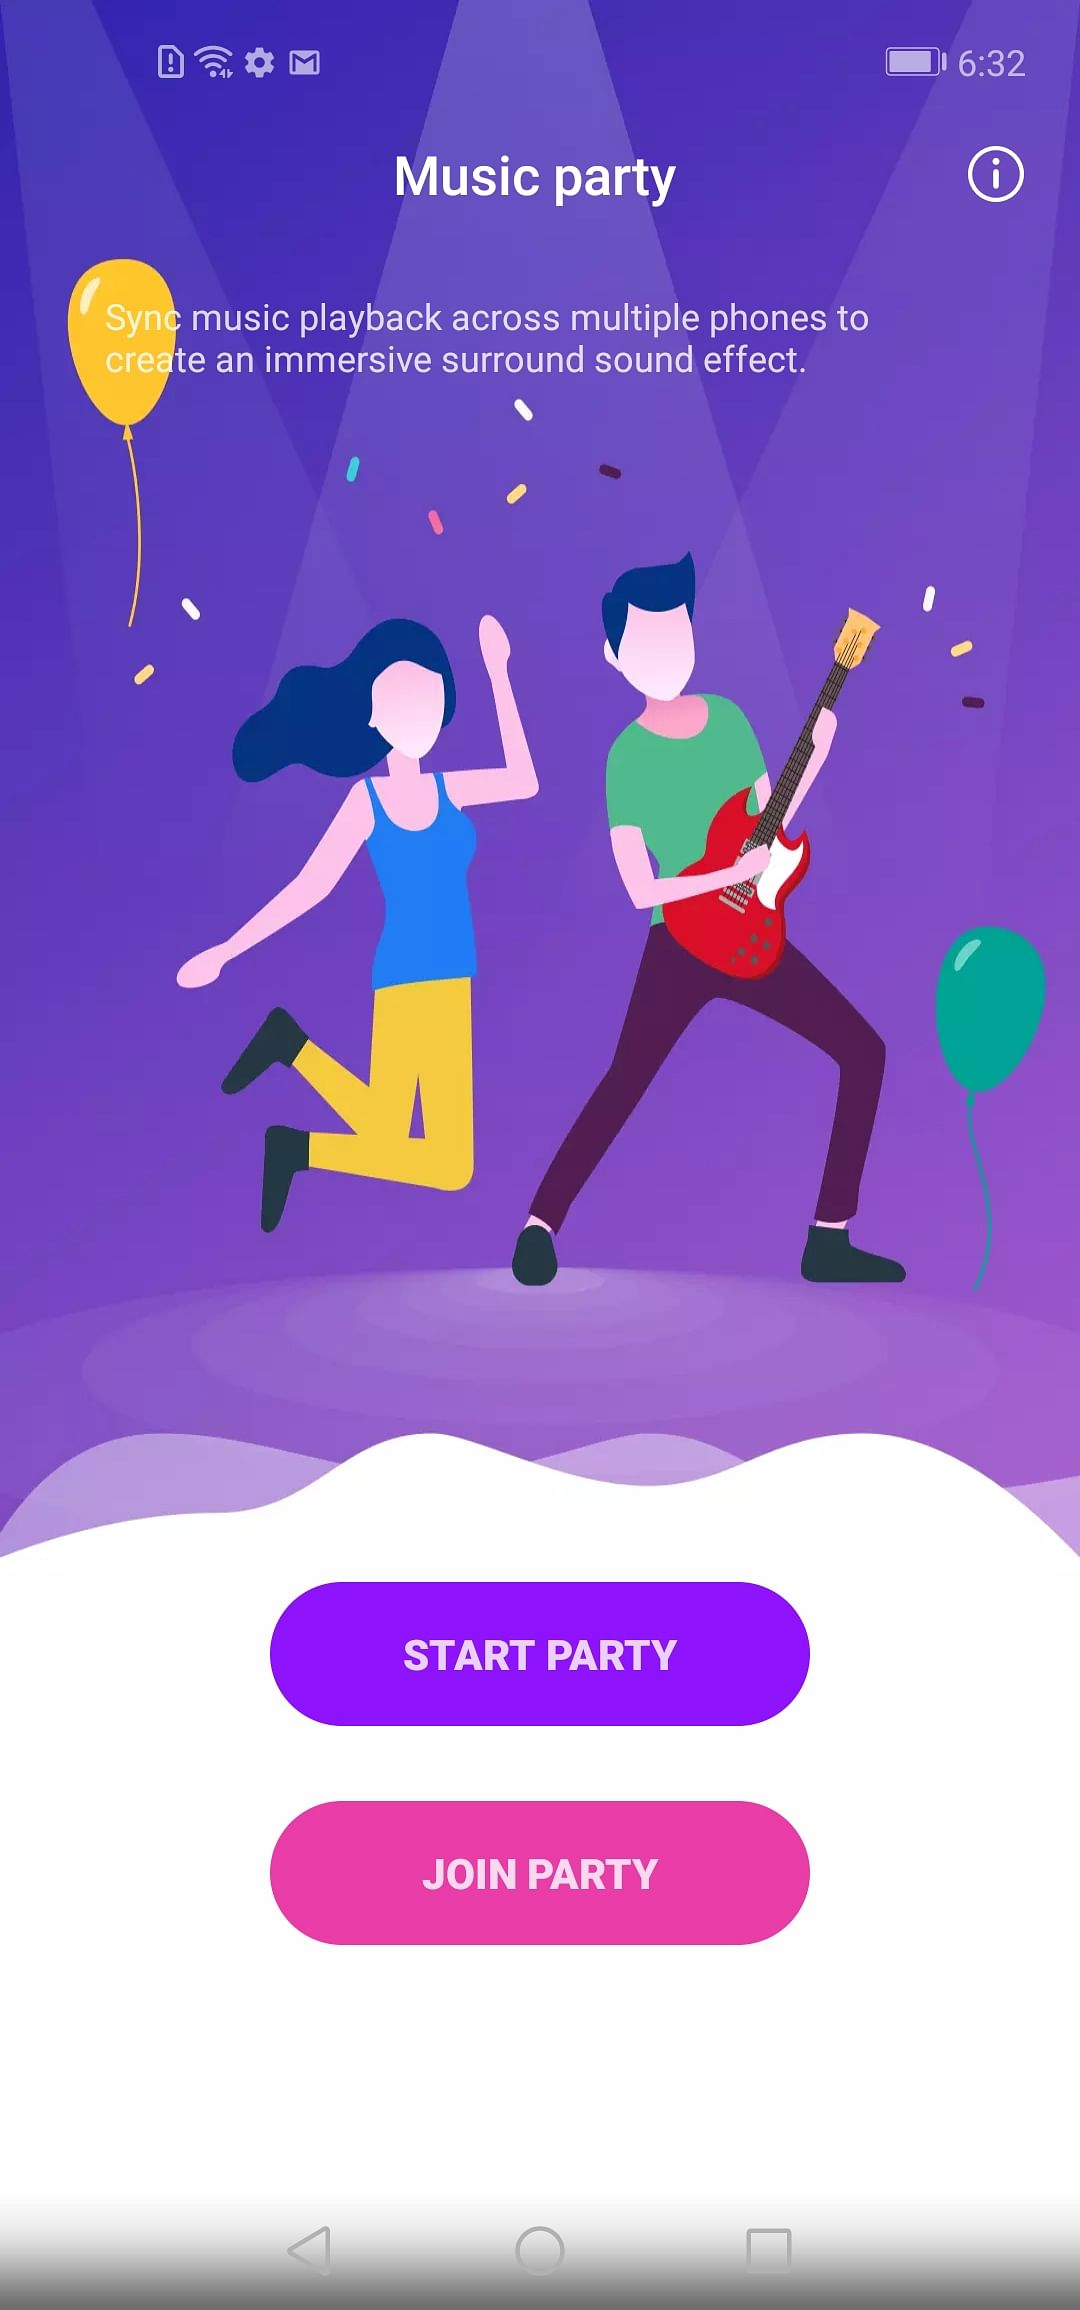 Honor View 20's party mode allows you to sync music playback across various phones.